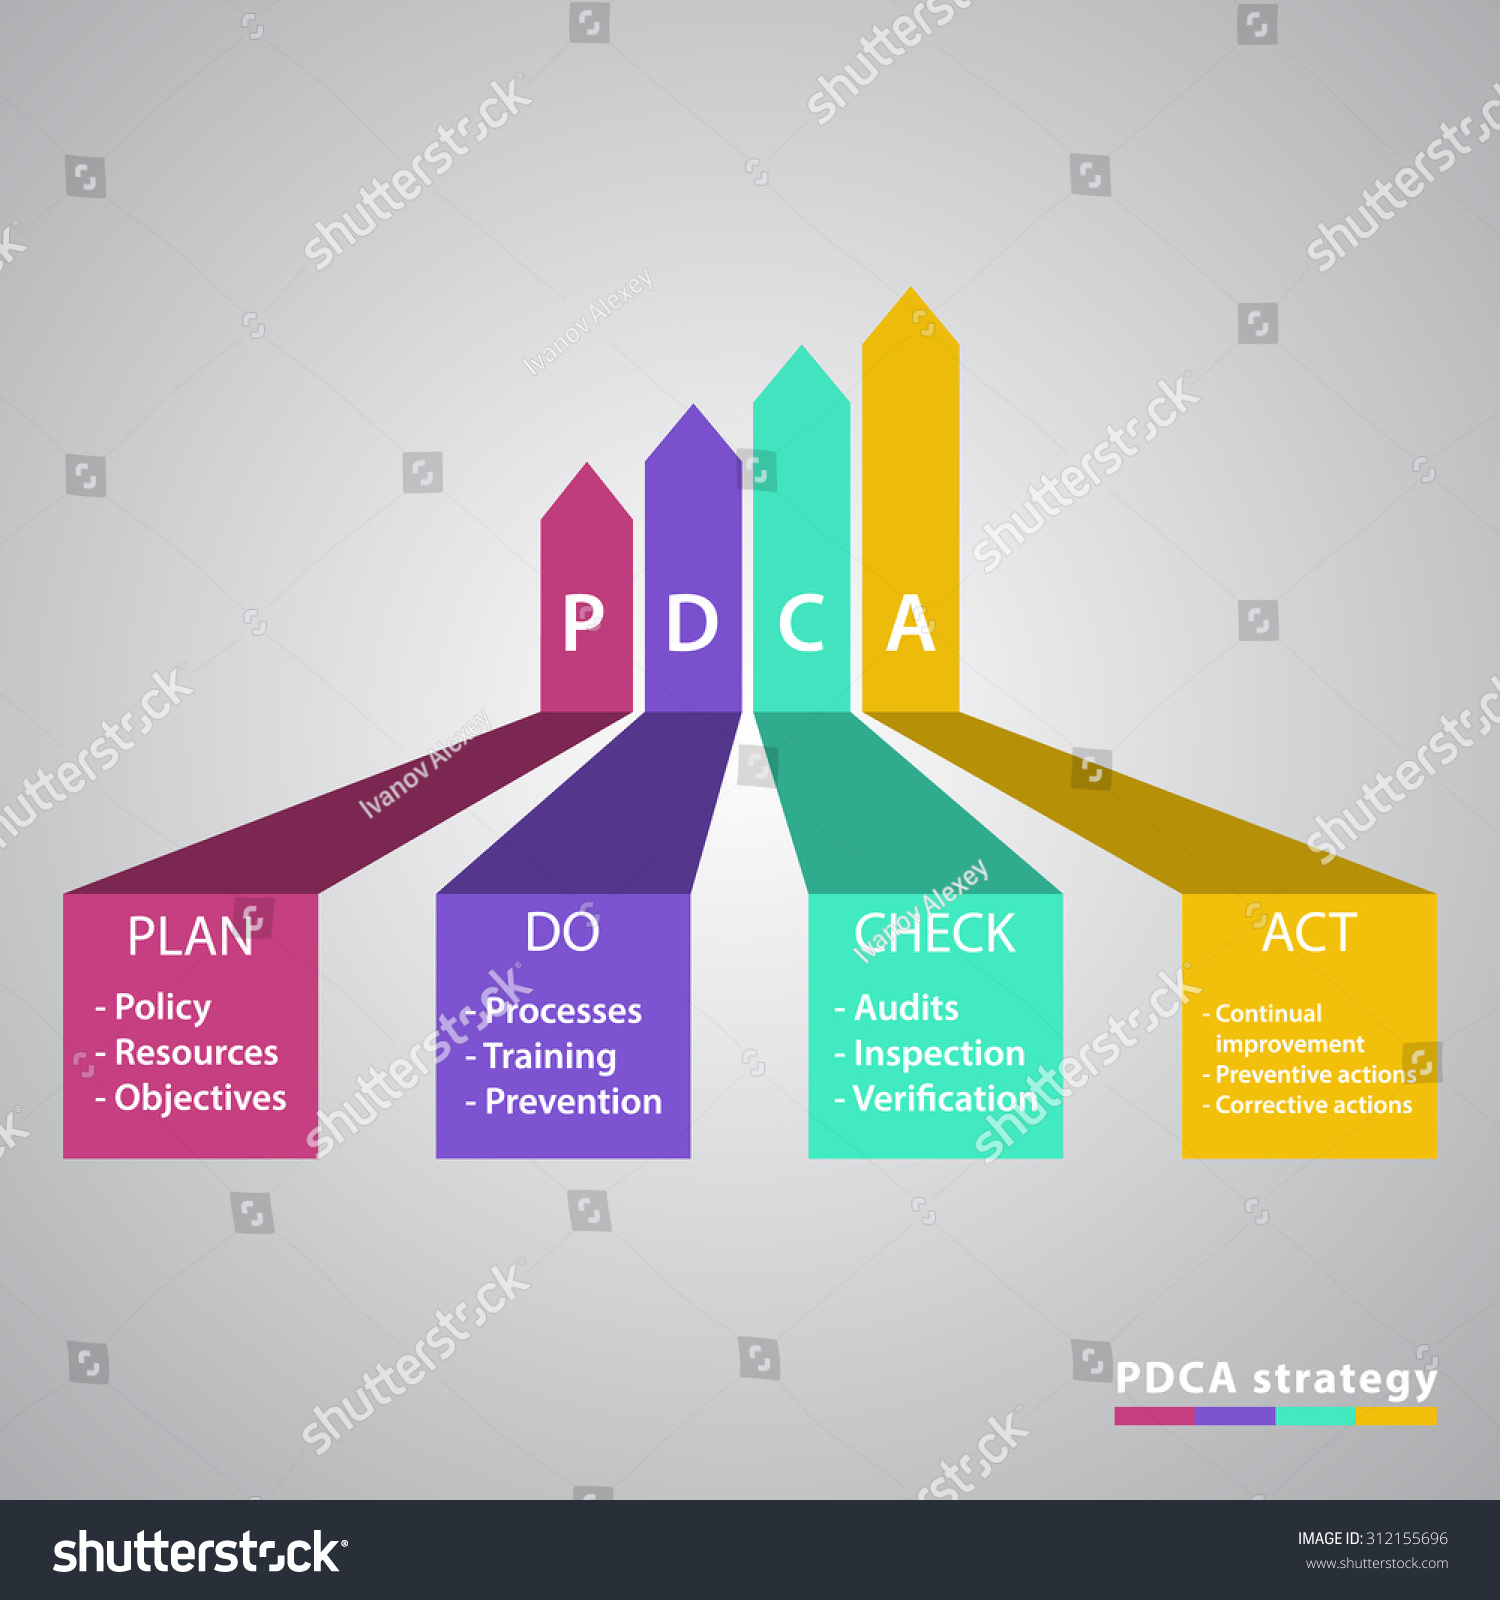 Pdca Plan Do Check Act Diagram Stockillustration 312155696 ...